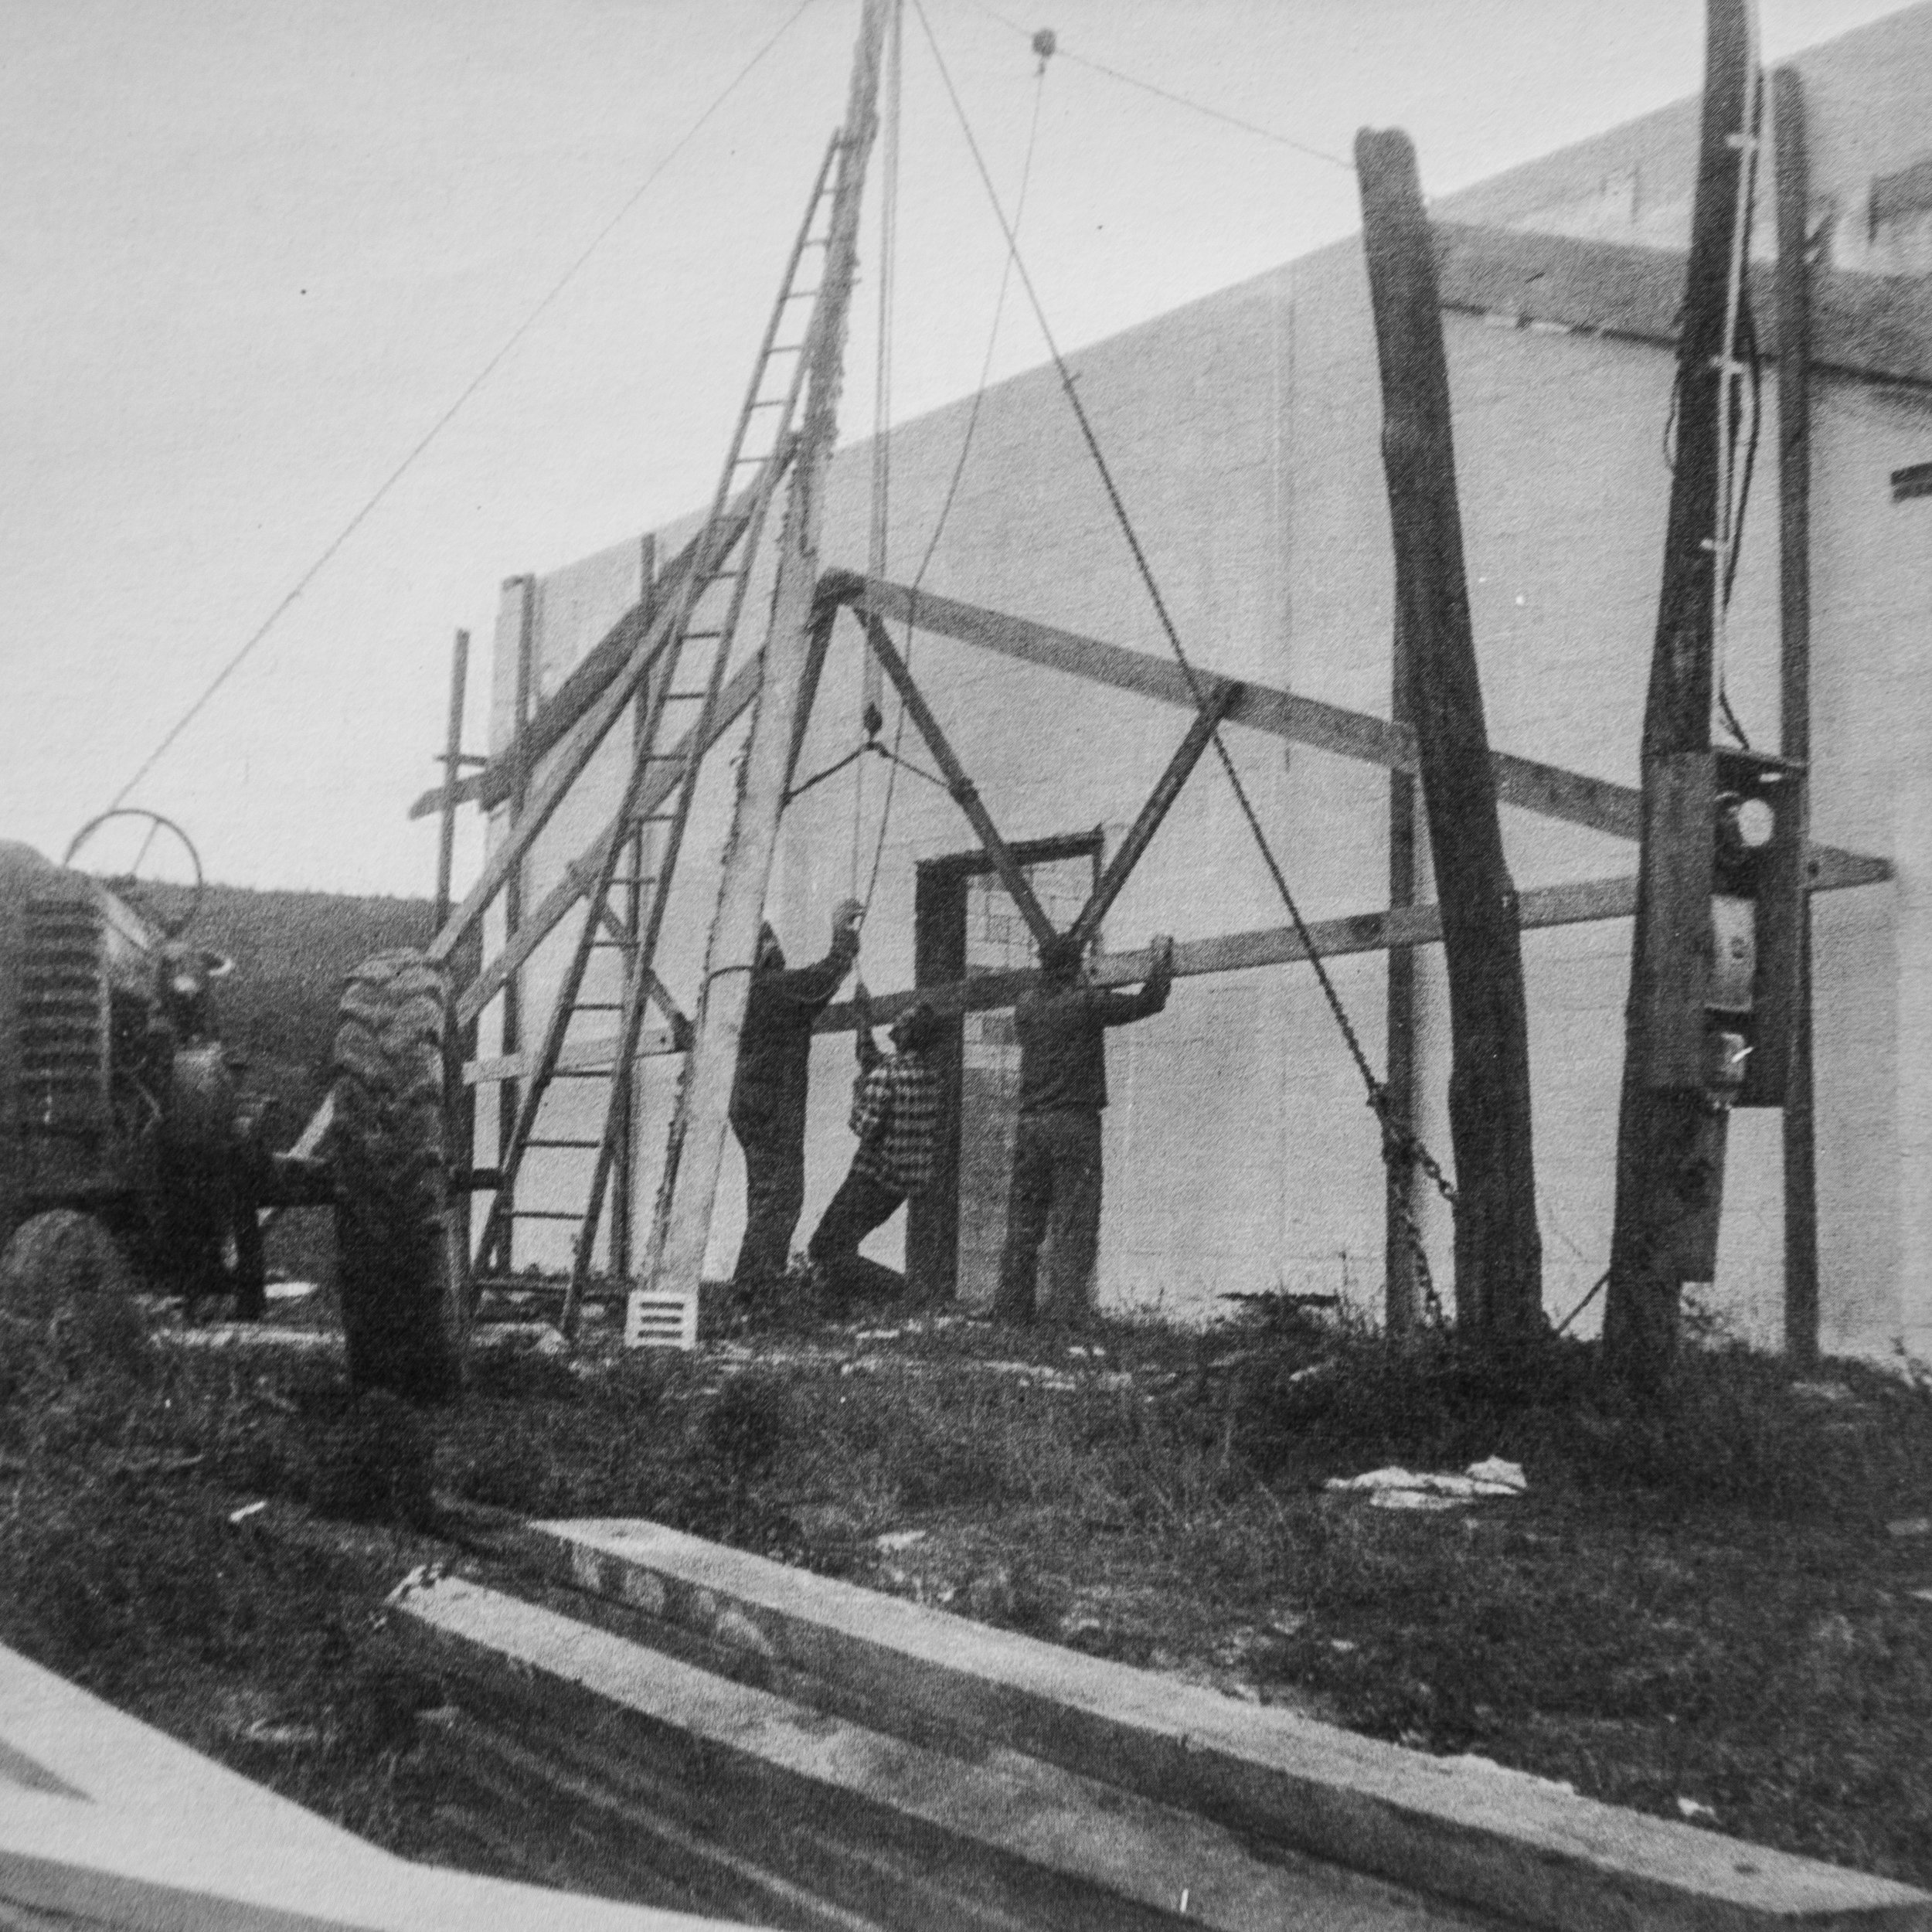 Construction of the storage/store 1958.